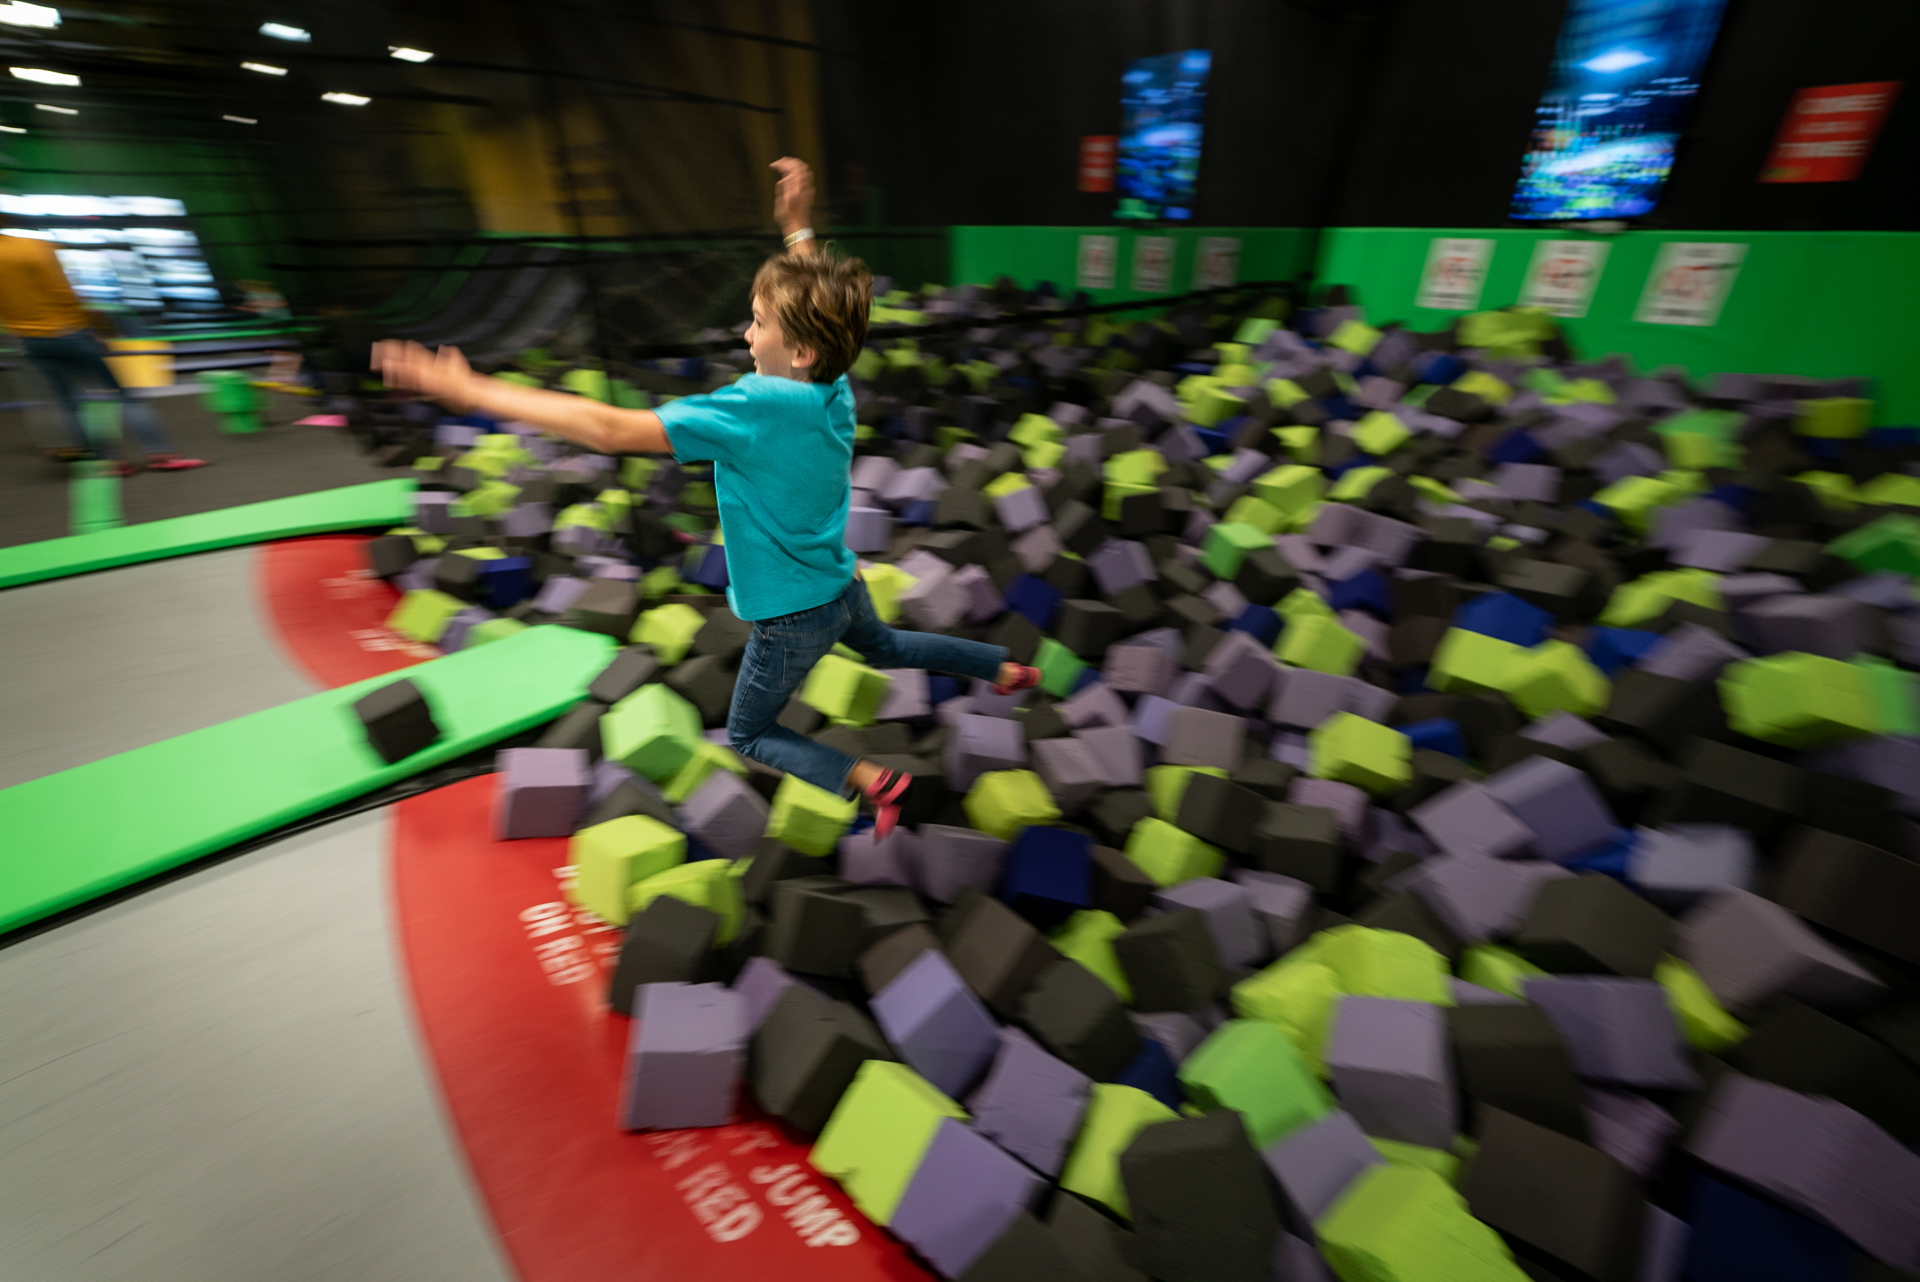 Get Air Trampoline Park Billings Montana